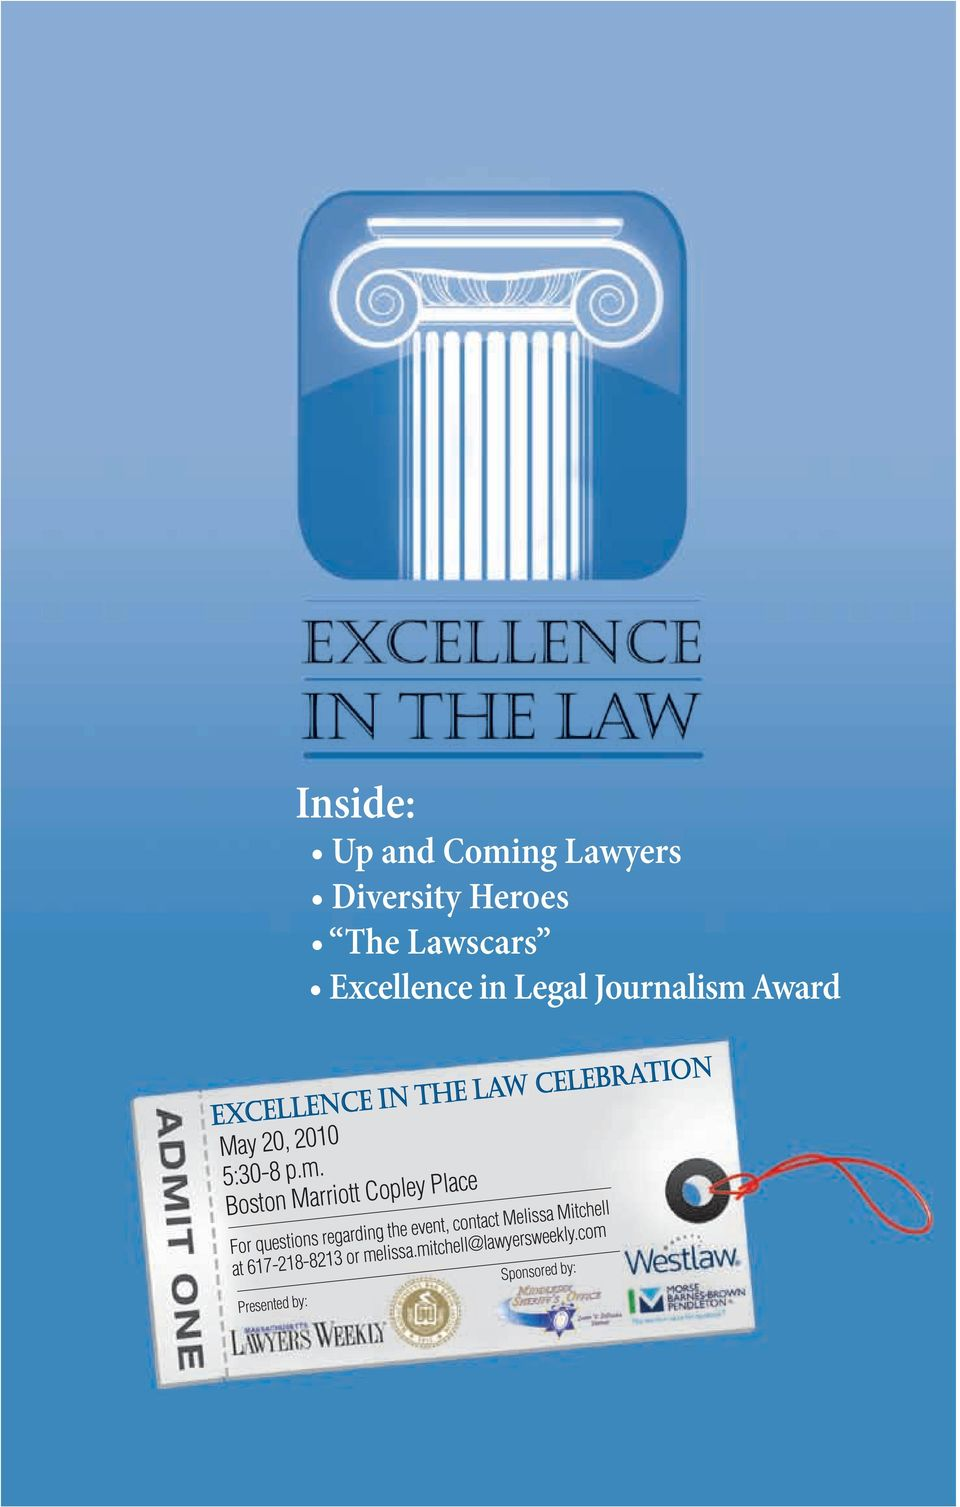 Award Excellence in the law celebration May 20, 2010 5:30-8 p.m.